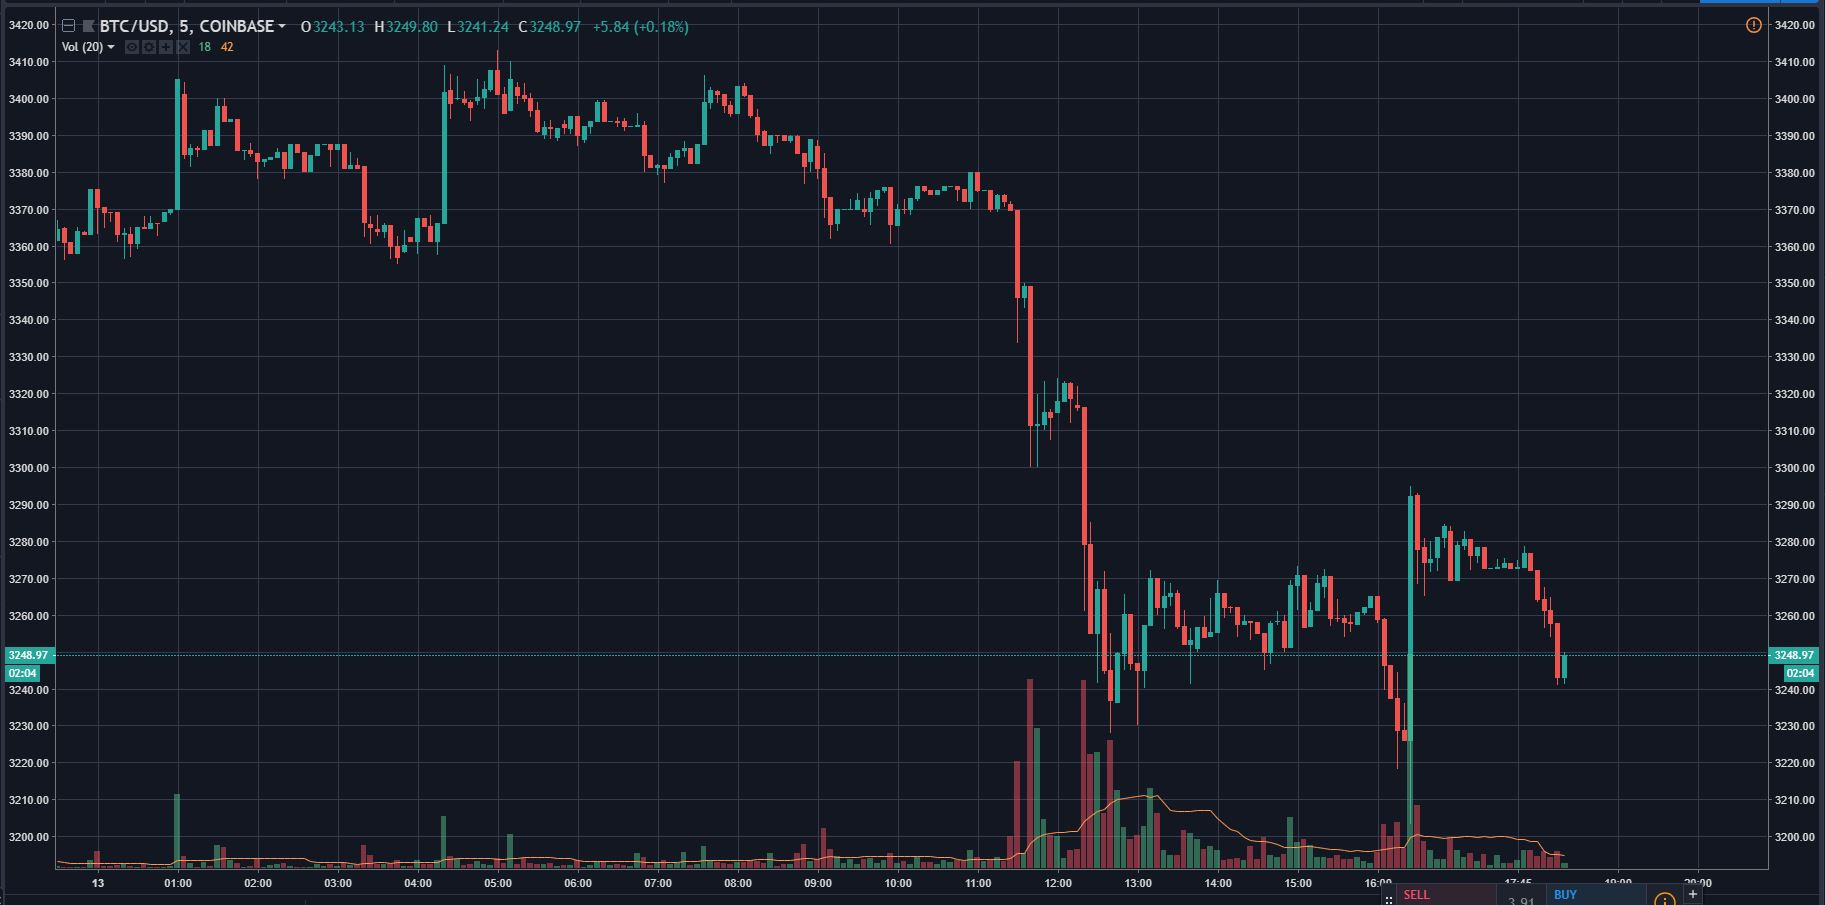 Bitcoin (BTC) Revisits YTD Low At $3,220, Crypto Fails To Breakout 2